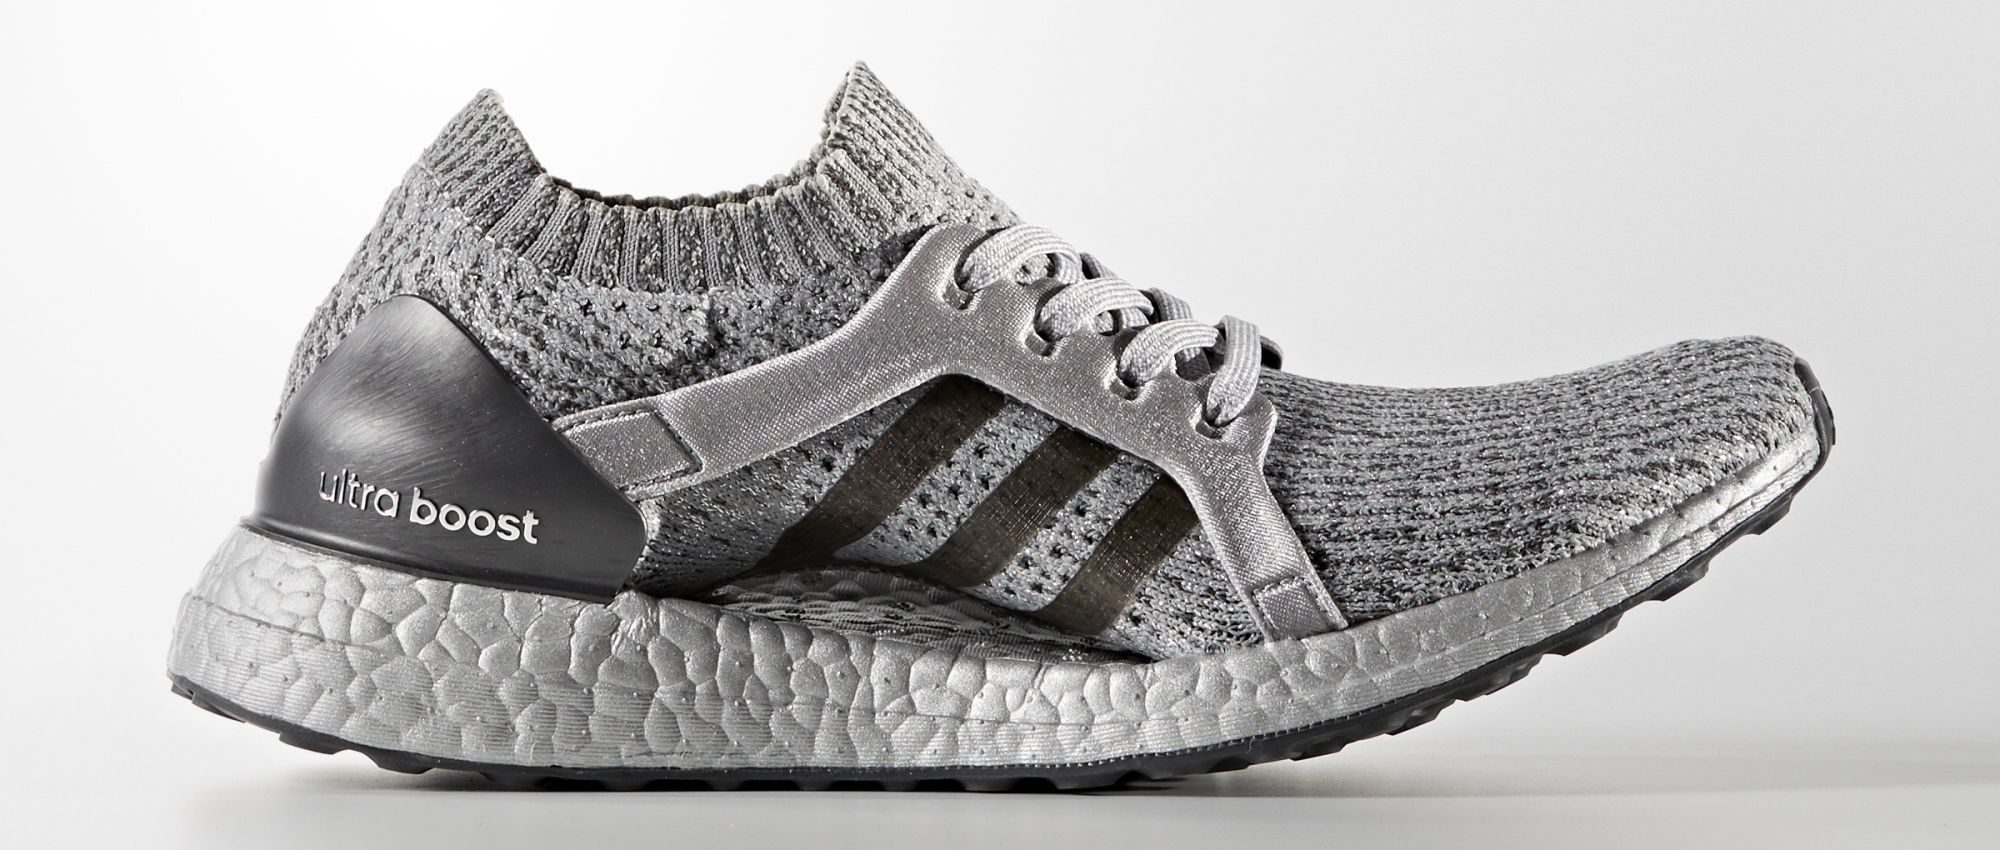 premium selection 2bf3a 06b23 The adidas 'Silver Boost' Collection is Available Now ...